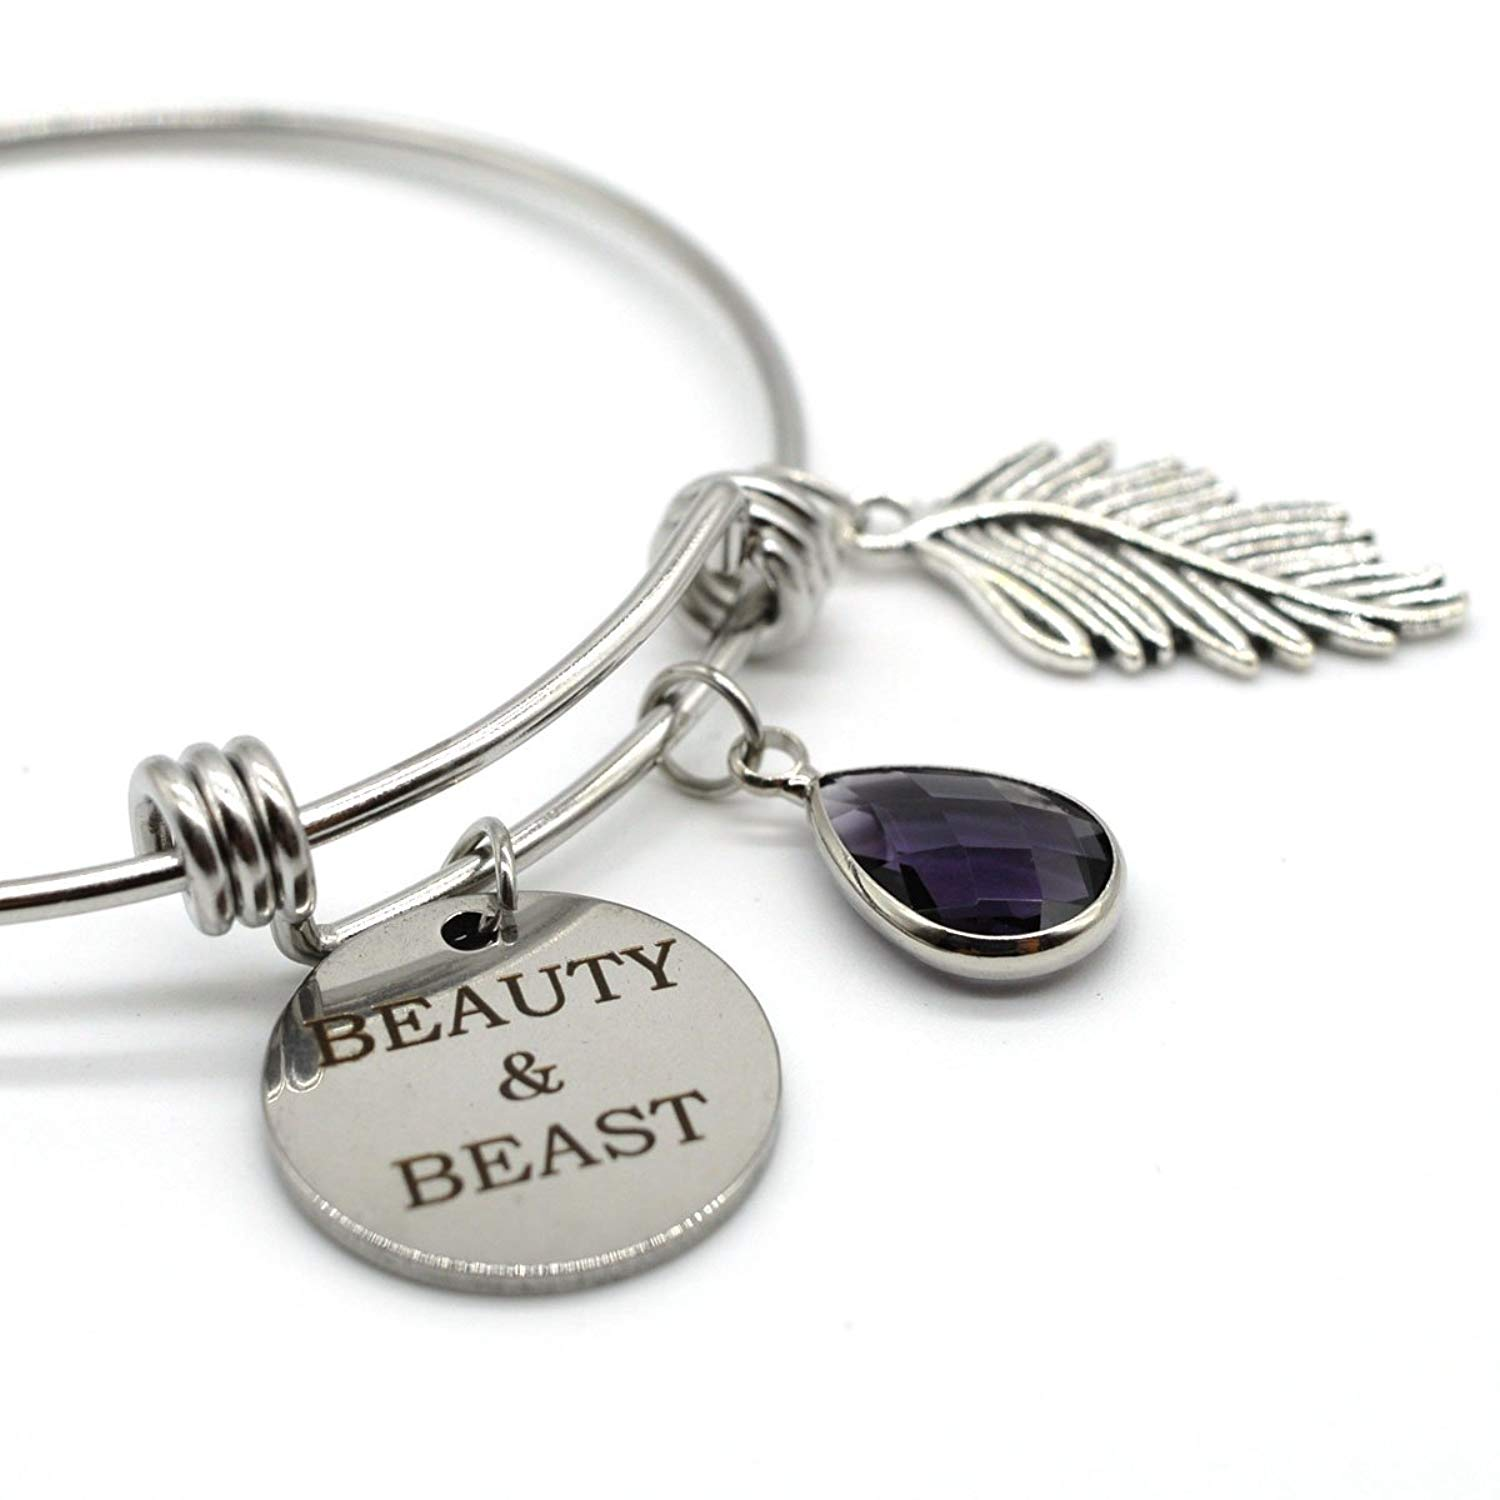 389e71d289ae3 Cheap Beauty And The Beast Jewelry, find Beauty And The Beast ...